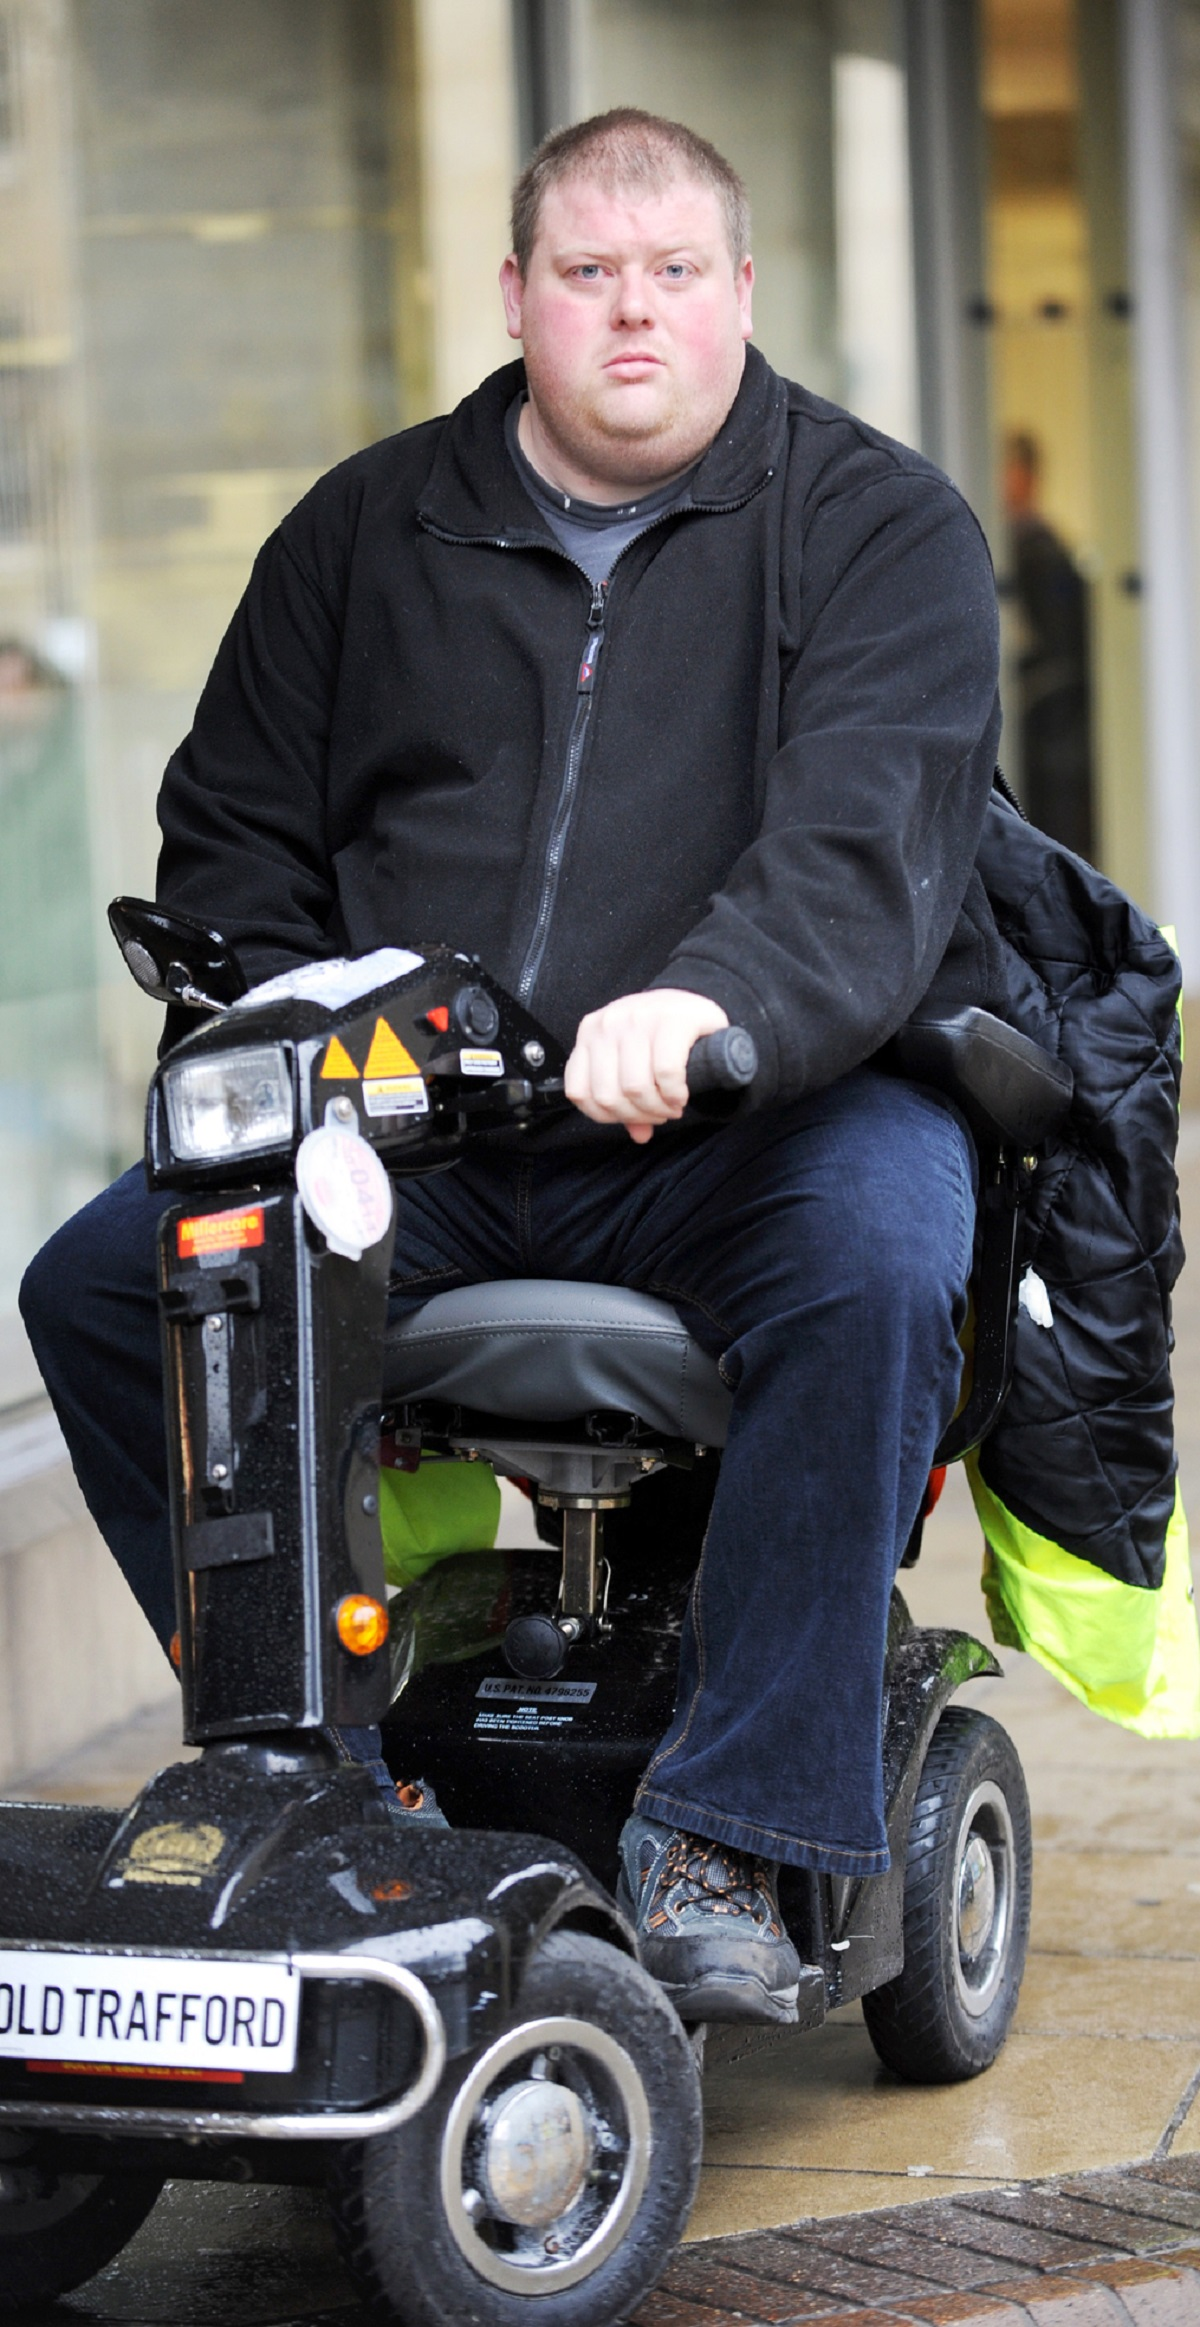 Disabled former steward Steven Lucas